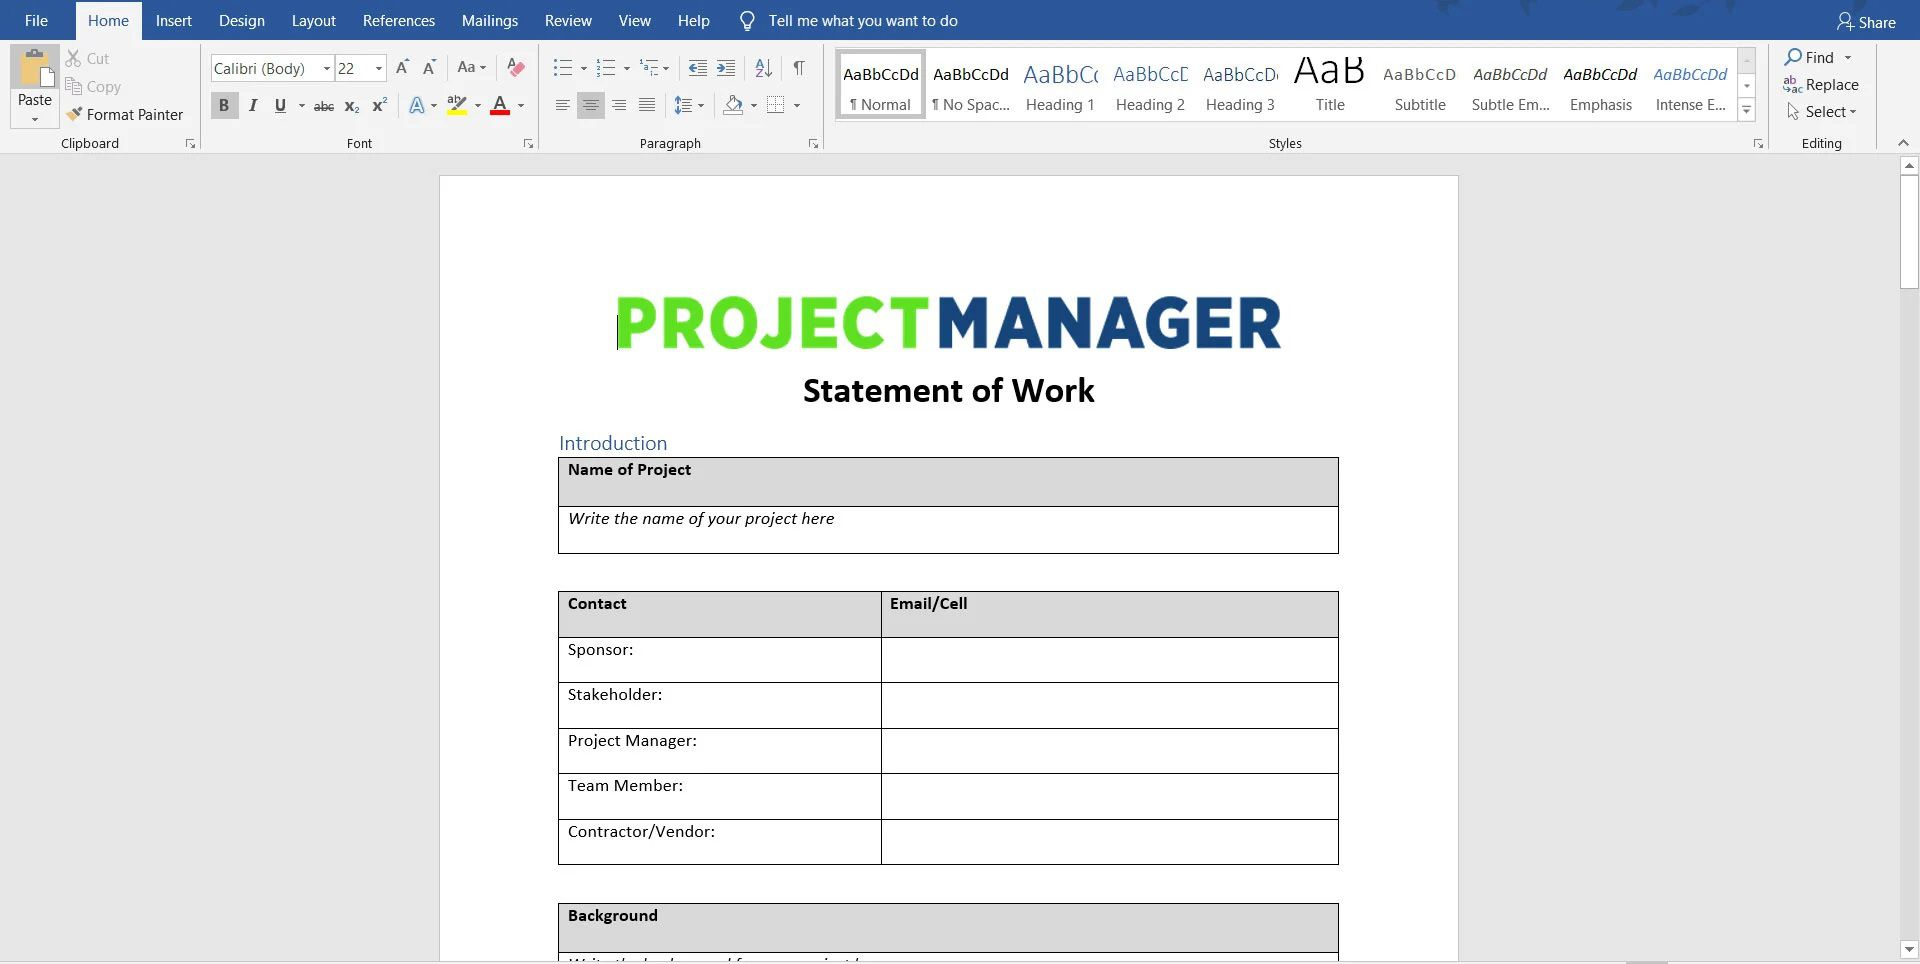 009 Fearsome Statement Of Work Template Consulting High Resolution  SampleFull